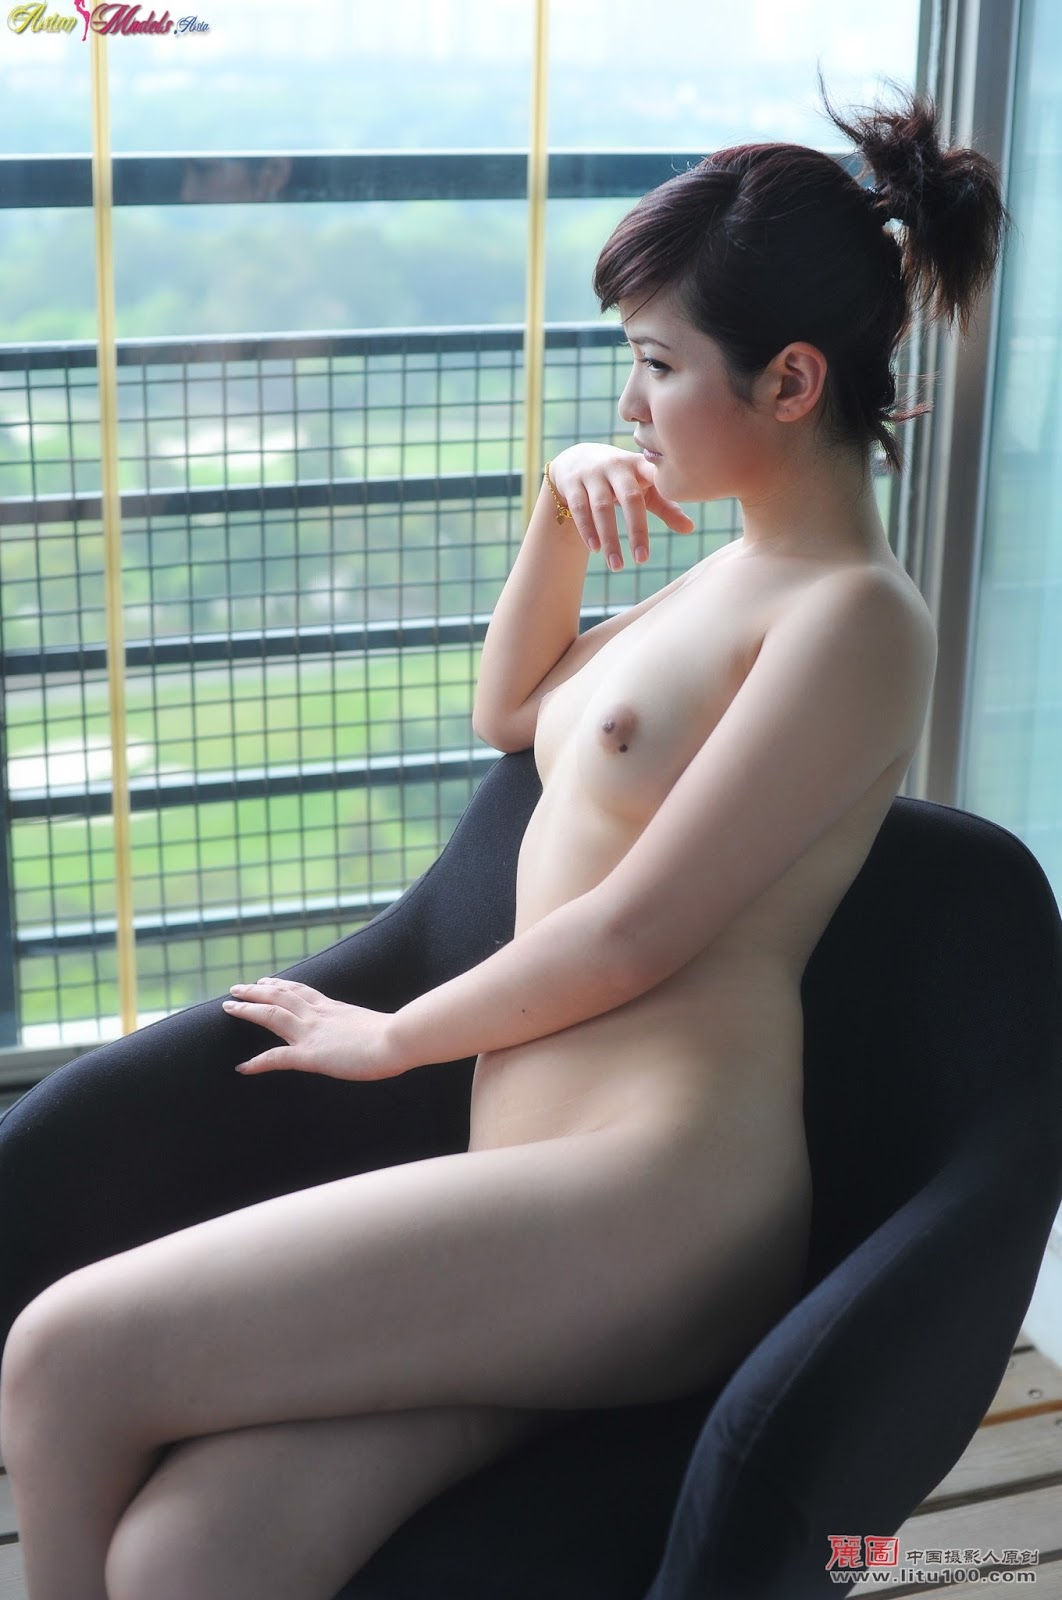 Chinese model nude interview leaked 4